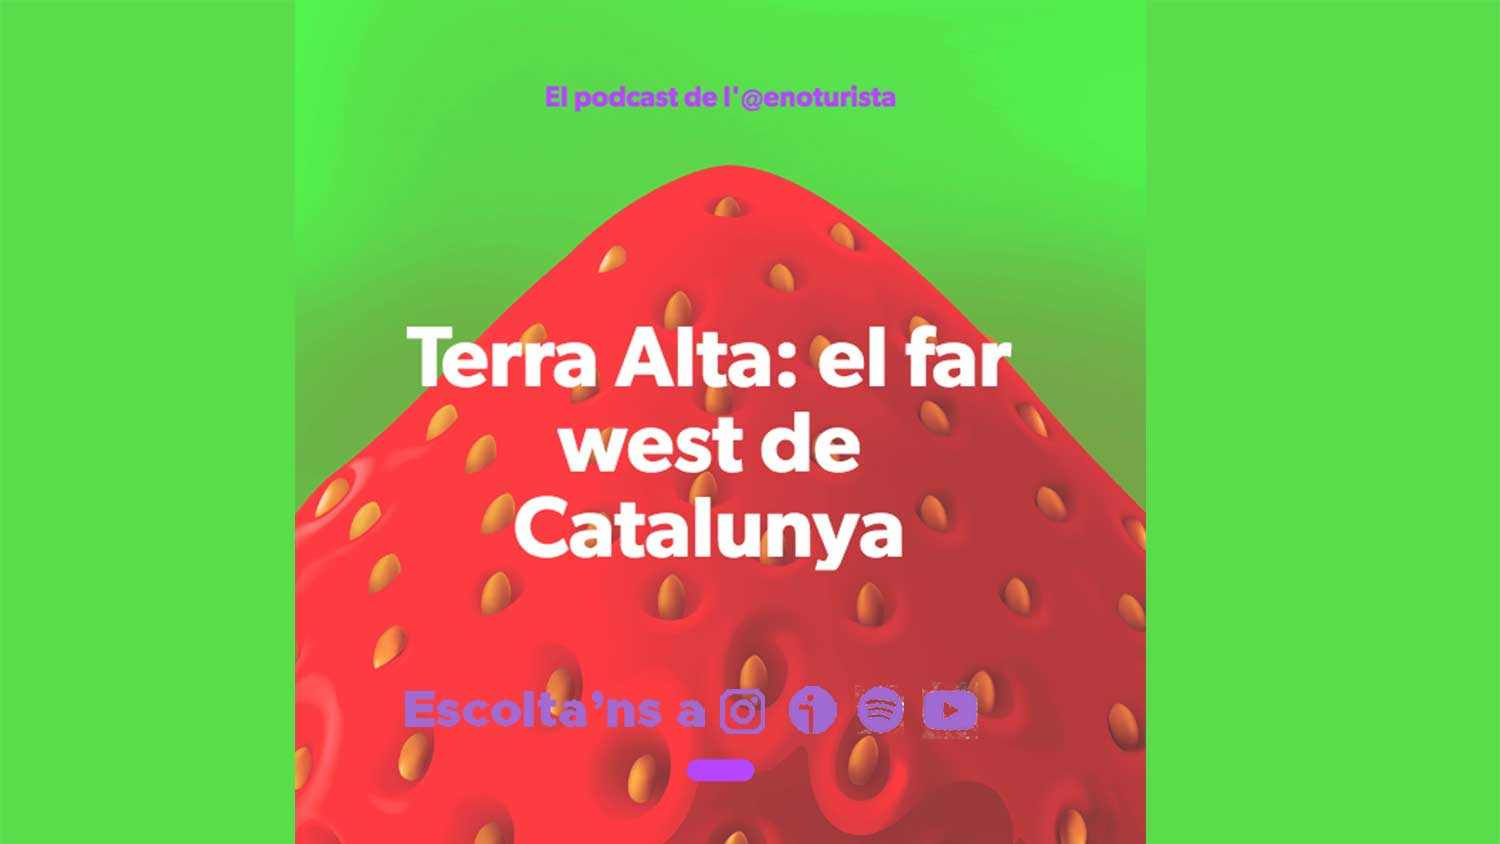 Nou podcast! Terra Alta: el far west de Catalunya